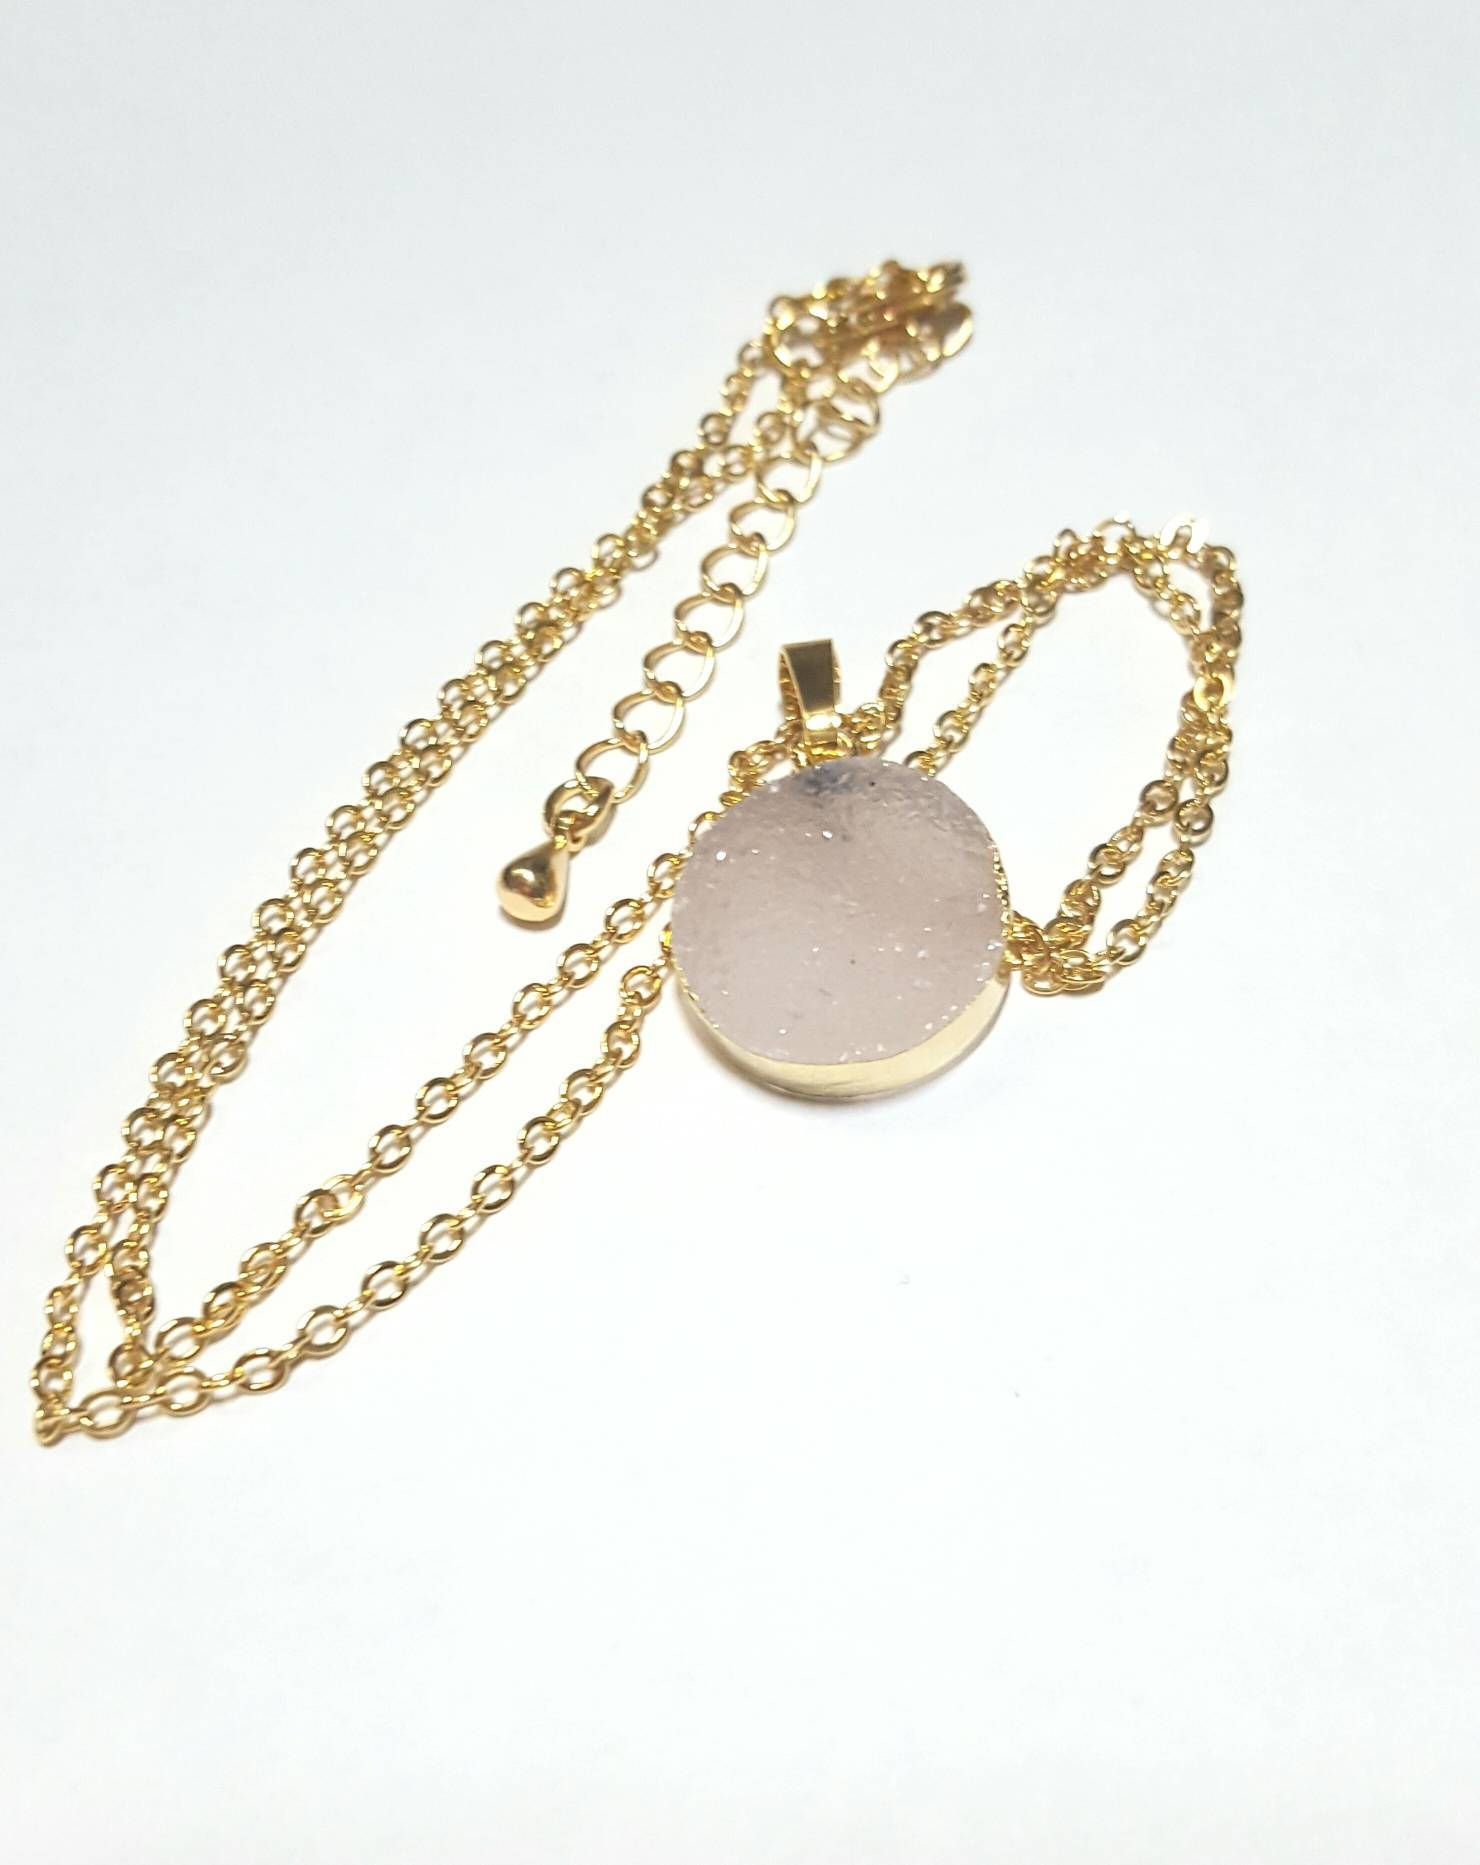 Druzy round pendant necklace natural grey drusy pendant on gold druzy round pendant necklace natural grey drusy pendant on gold chain natural druzy pendant aloadofball Image collections